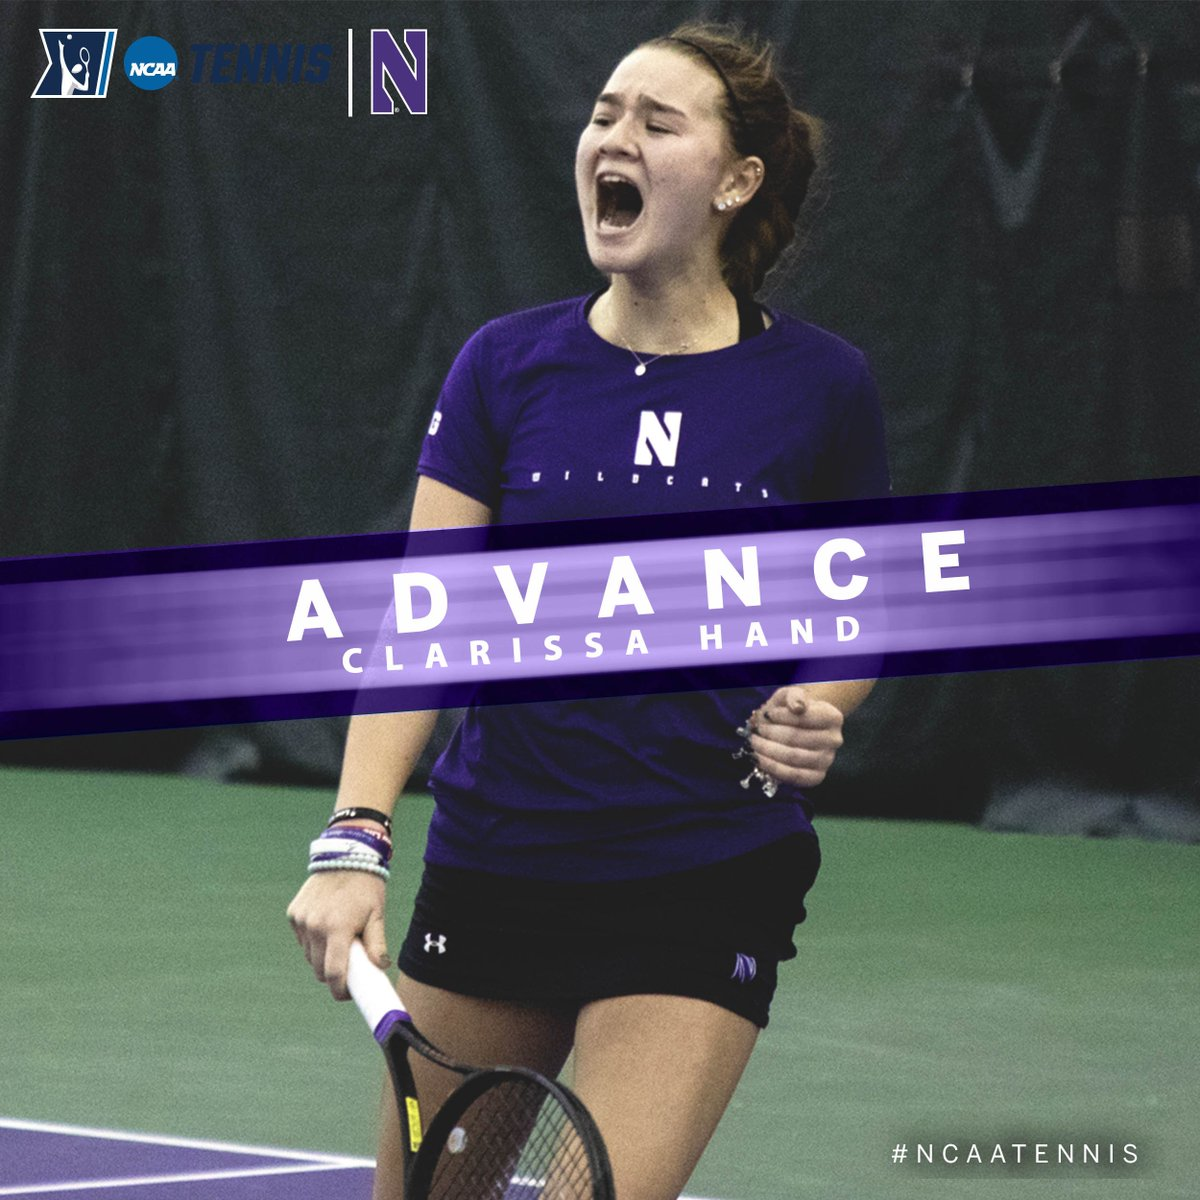 Clarissa Hand of @NUWildcatTennis is on moving to the @NCAATennis Singles Second Round after a 7-6, 4-6, 6-4 win over Emma Davis of Wake Forest in Monday's action in Orlando. @B1GWTennis